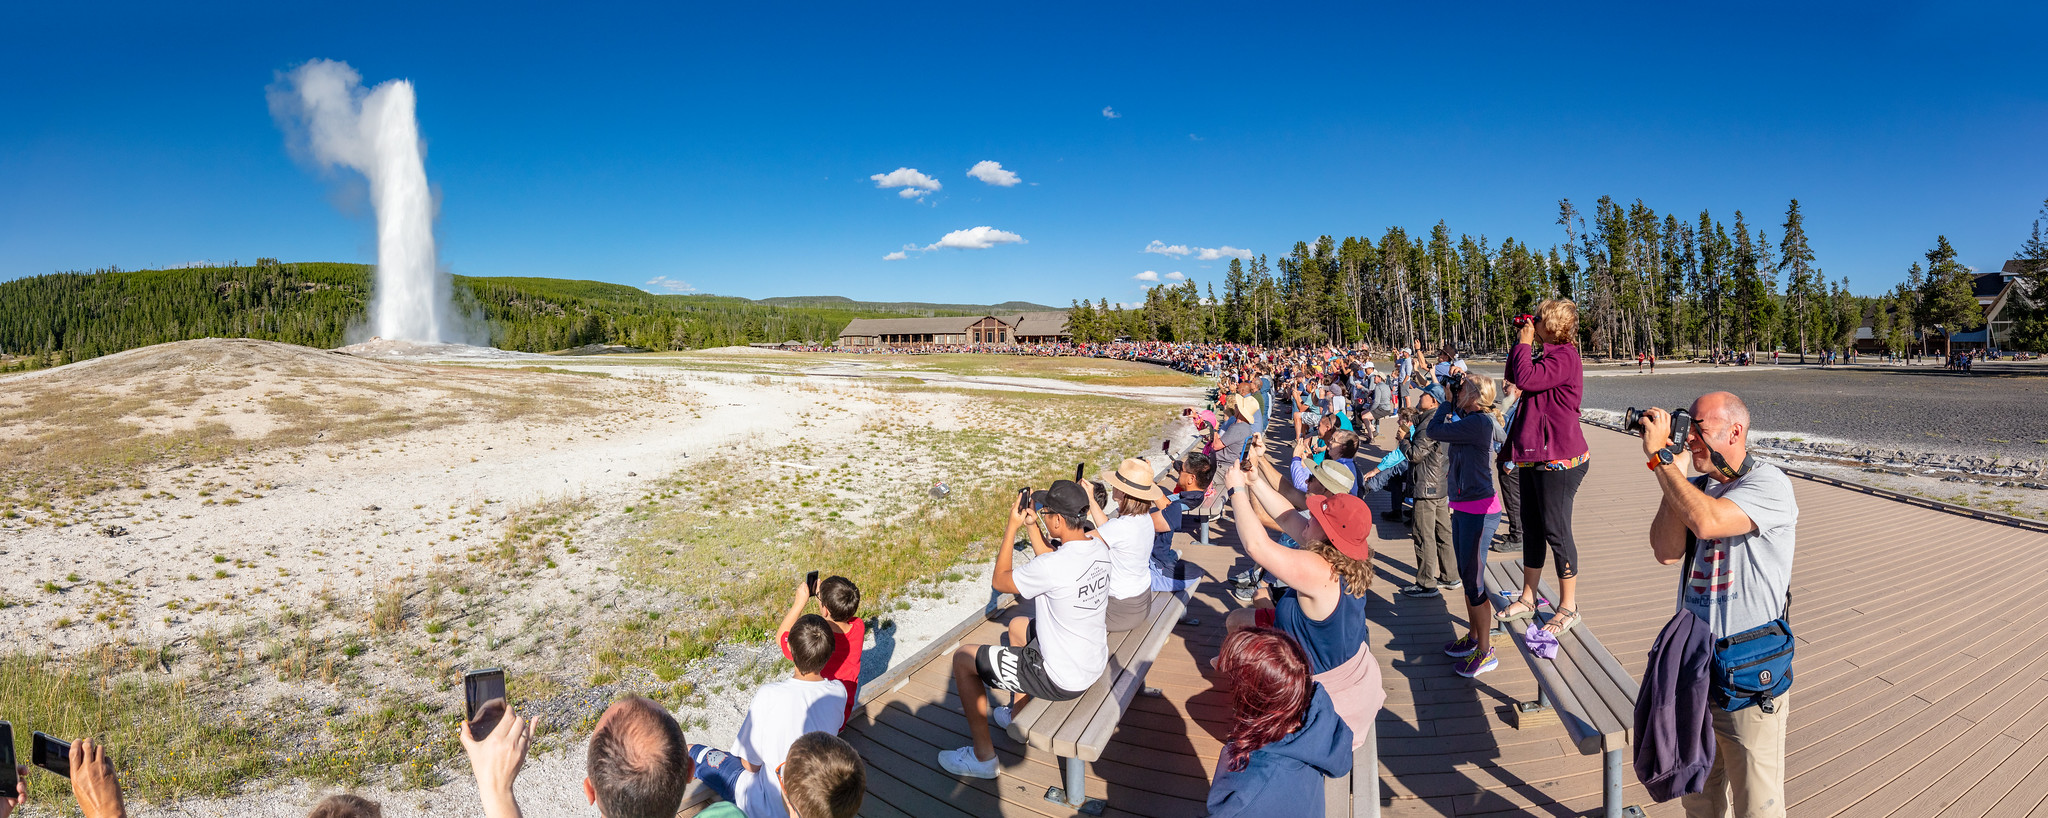 A group of people watch an Old Faithful eruption